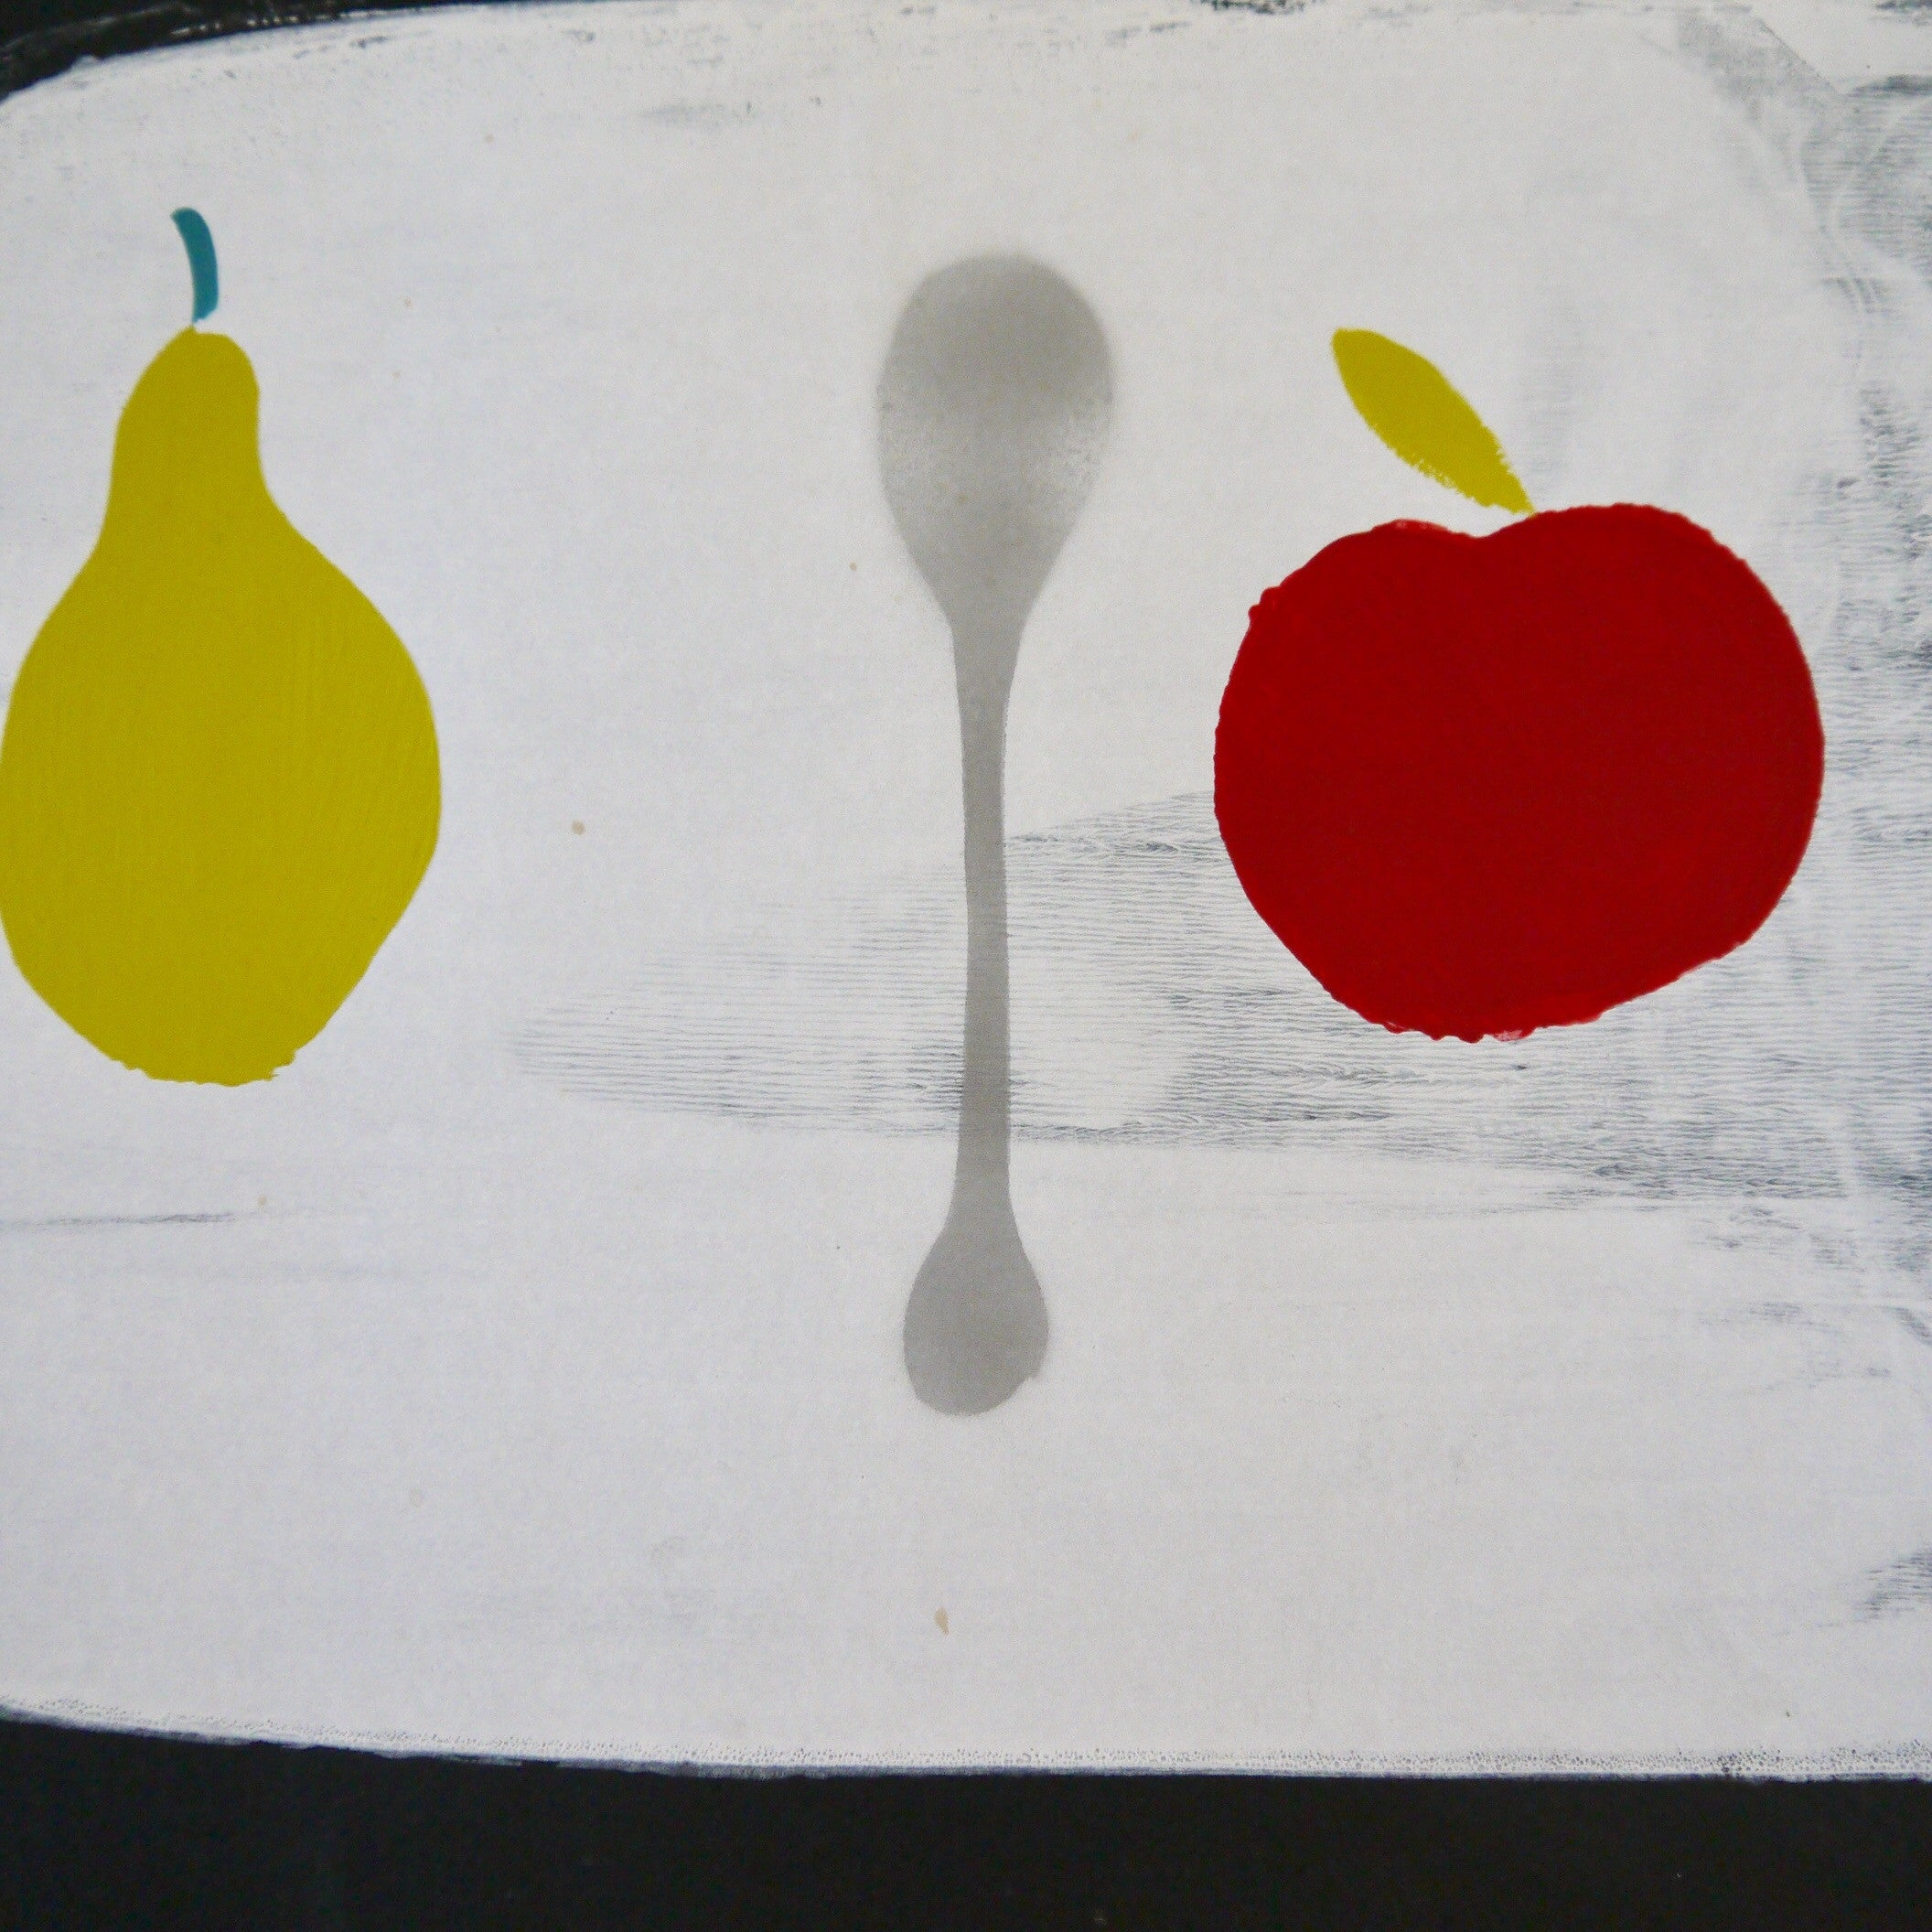 Apple + Pear + Spoon  print